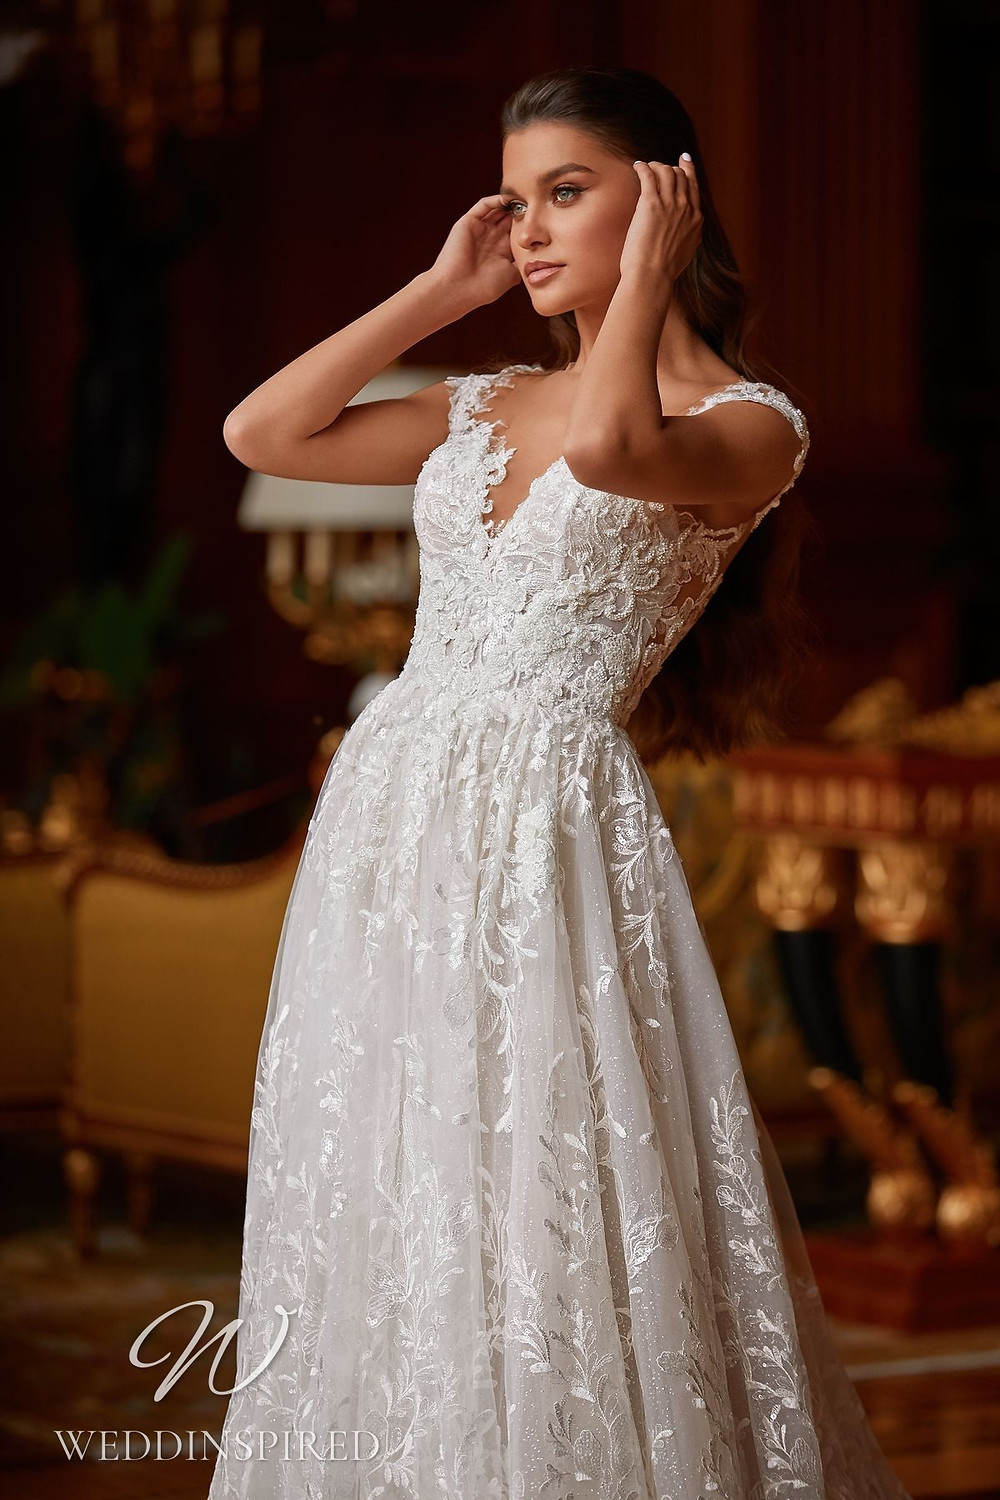 A Pollardi 2021 lace and tulle A-line wedding dress